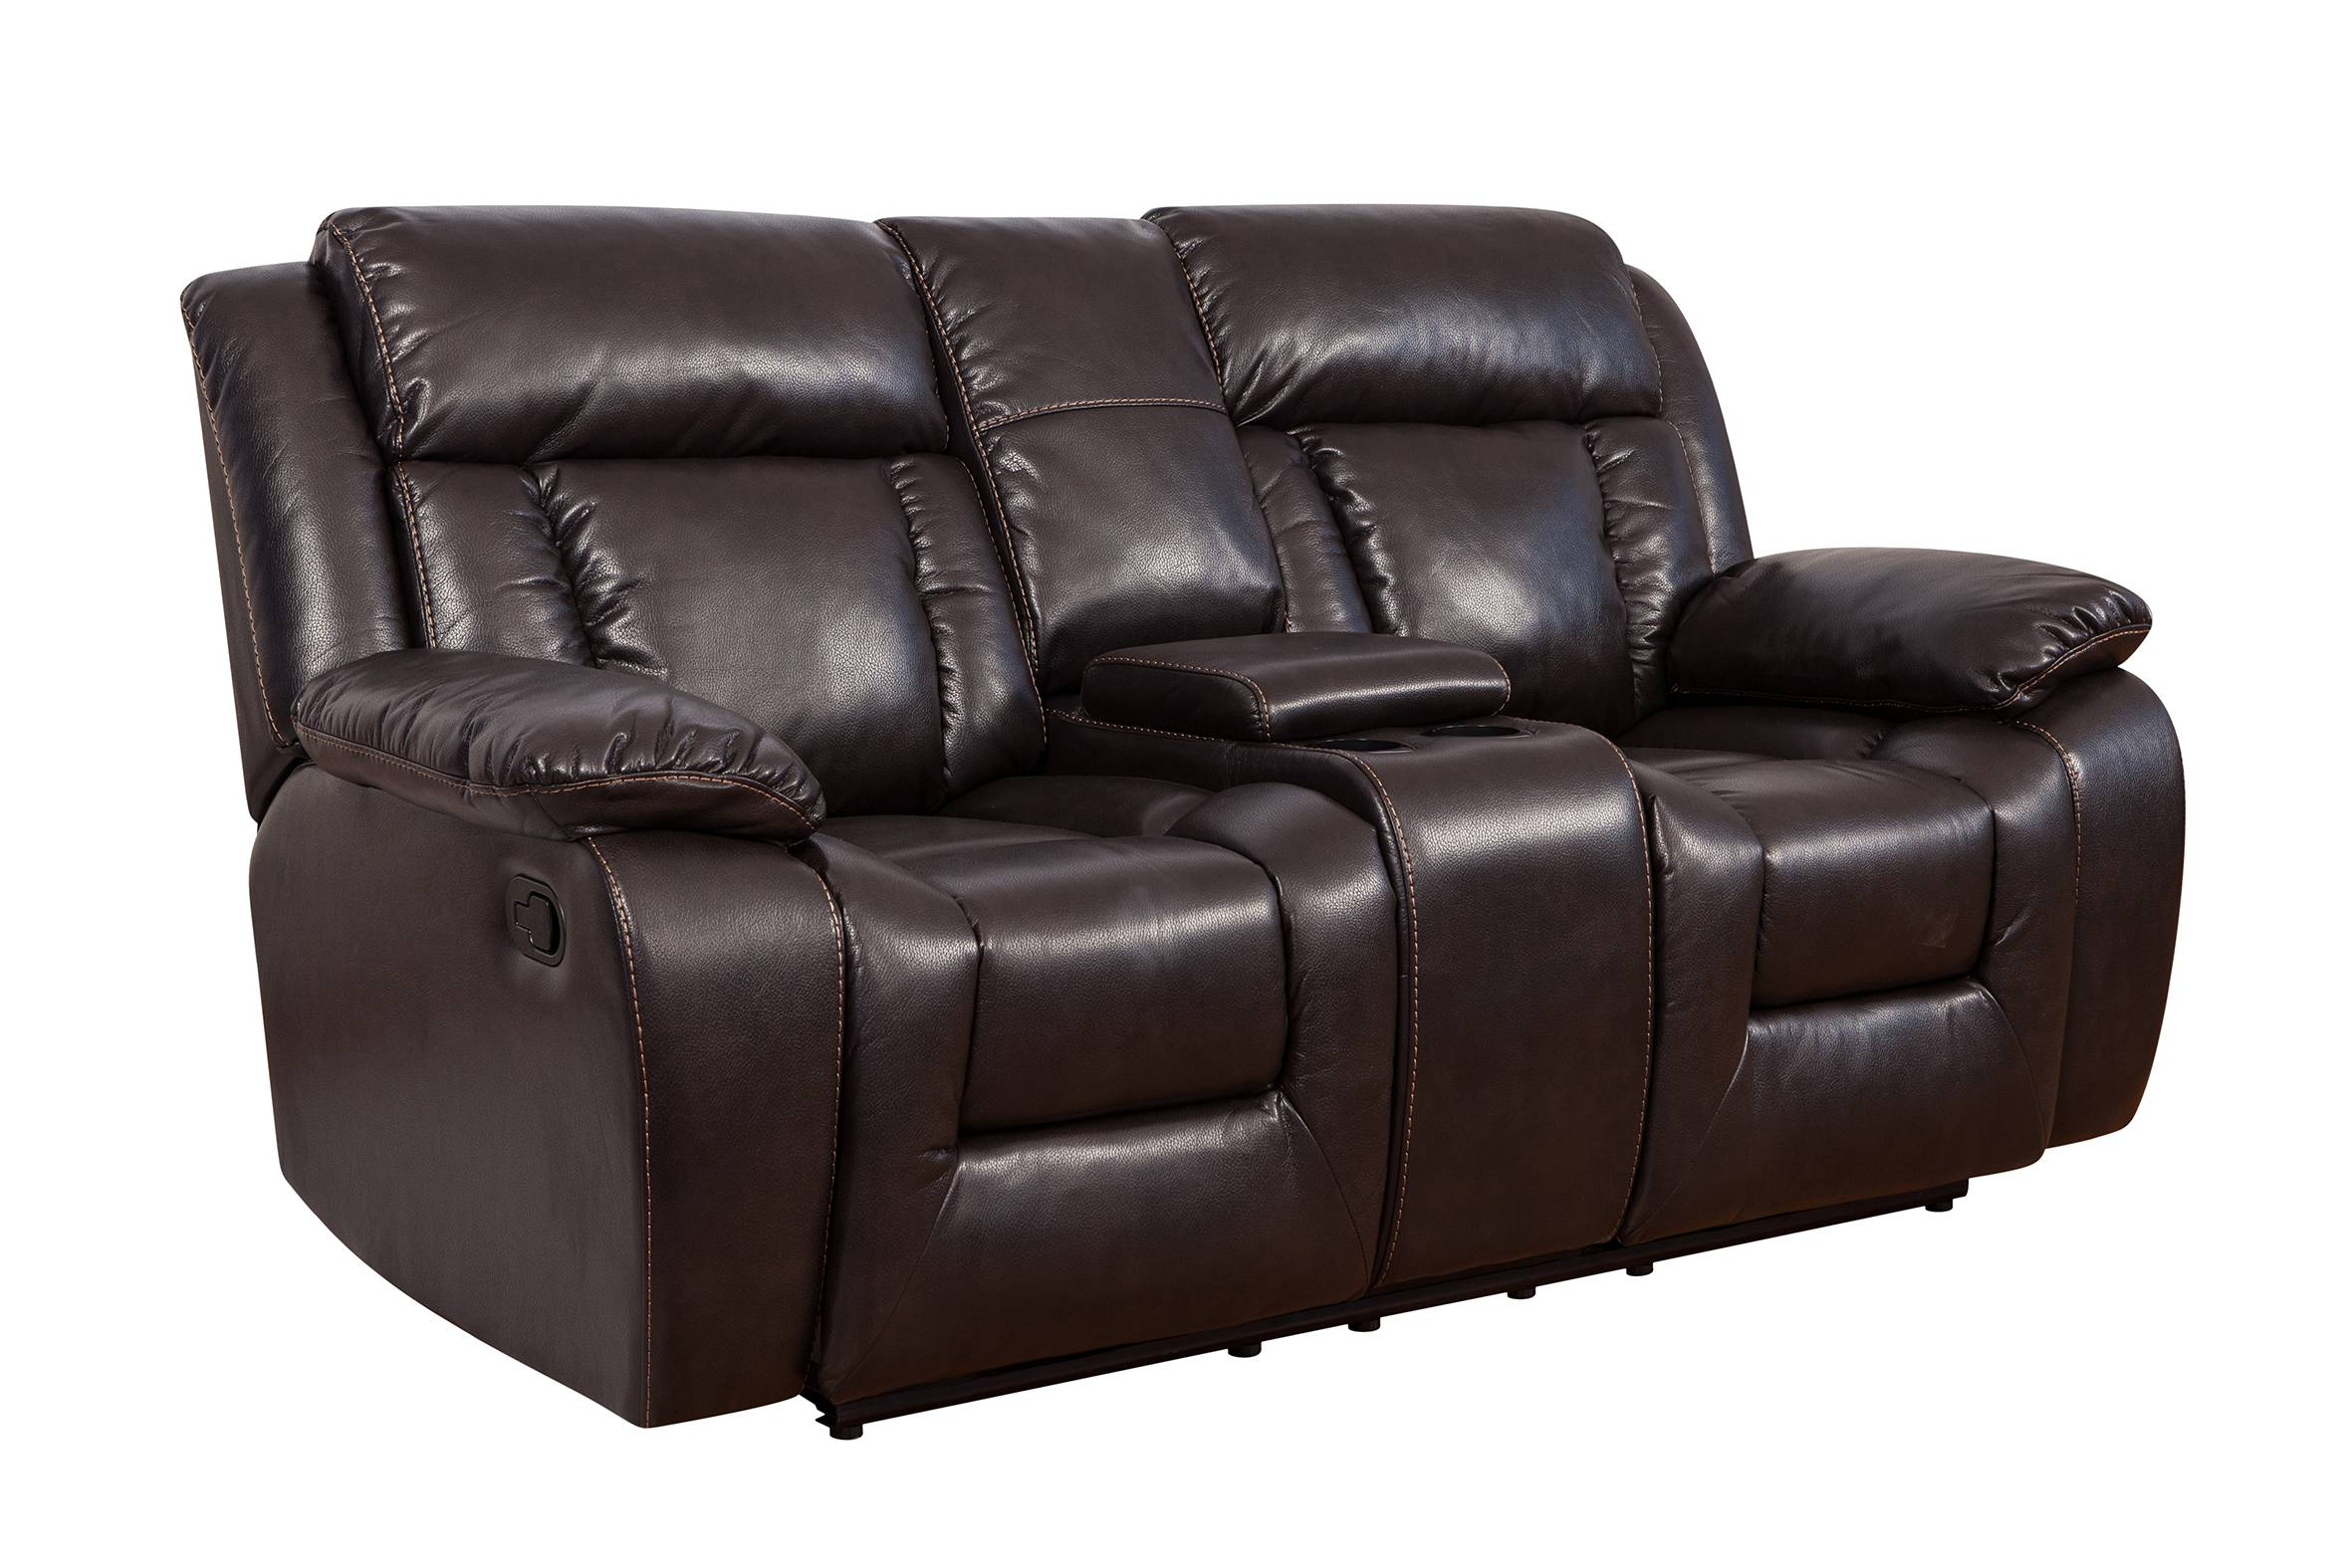 On sale modern red leather sofa living room with cup holder cinema furniture